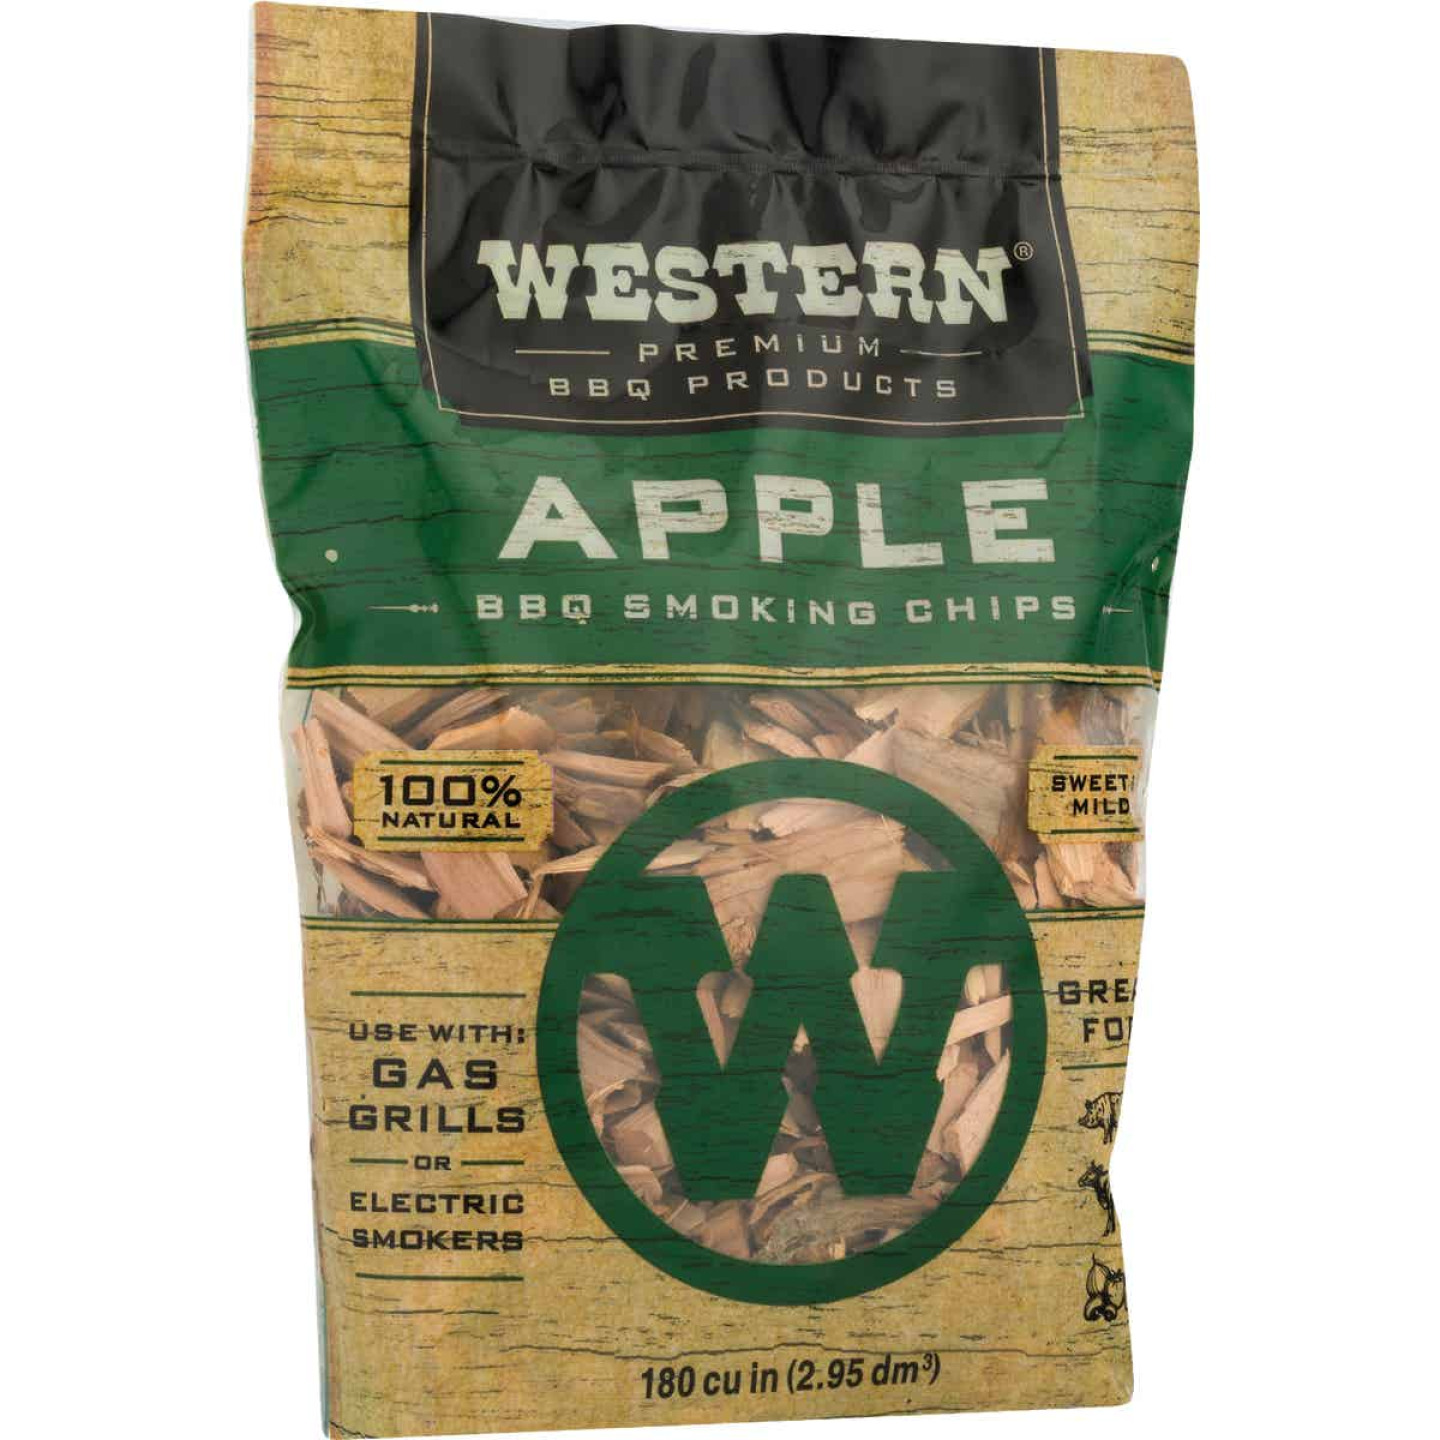 Western 2 Lb. Apple Wood Smoking Chips Image 4